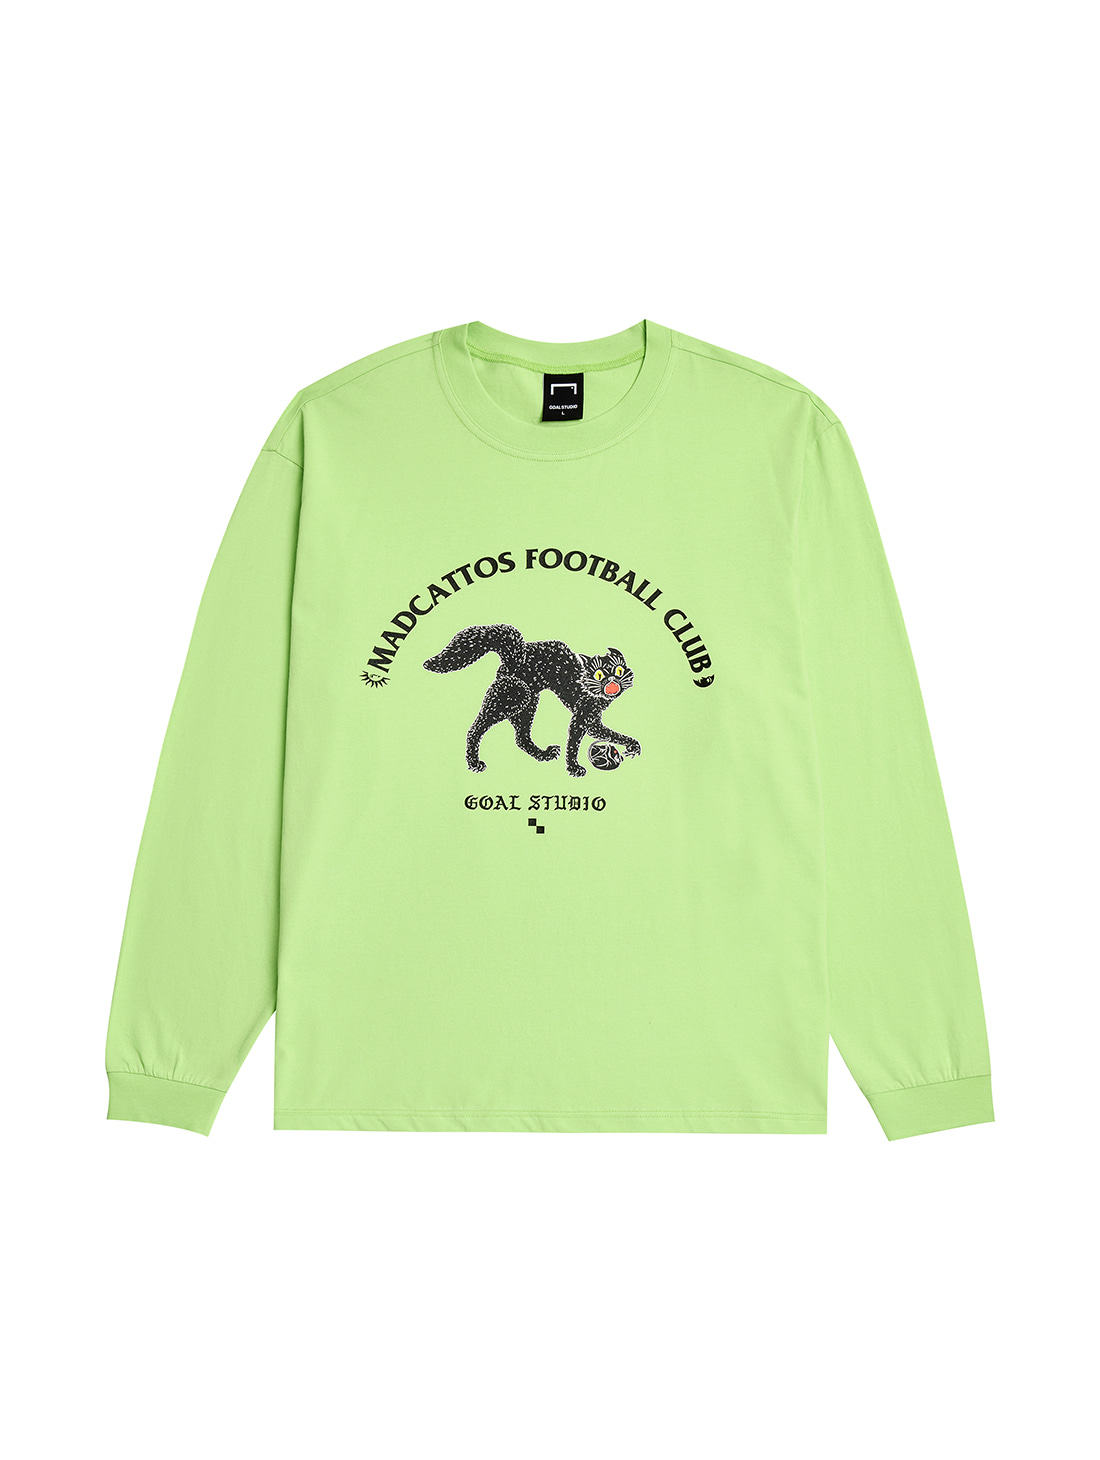 GOALSTUDIO MC GRAPHIC LONG SLEEVE TEE - LIME